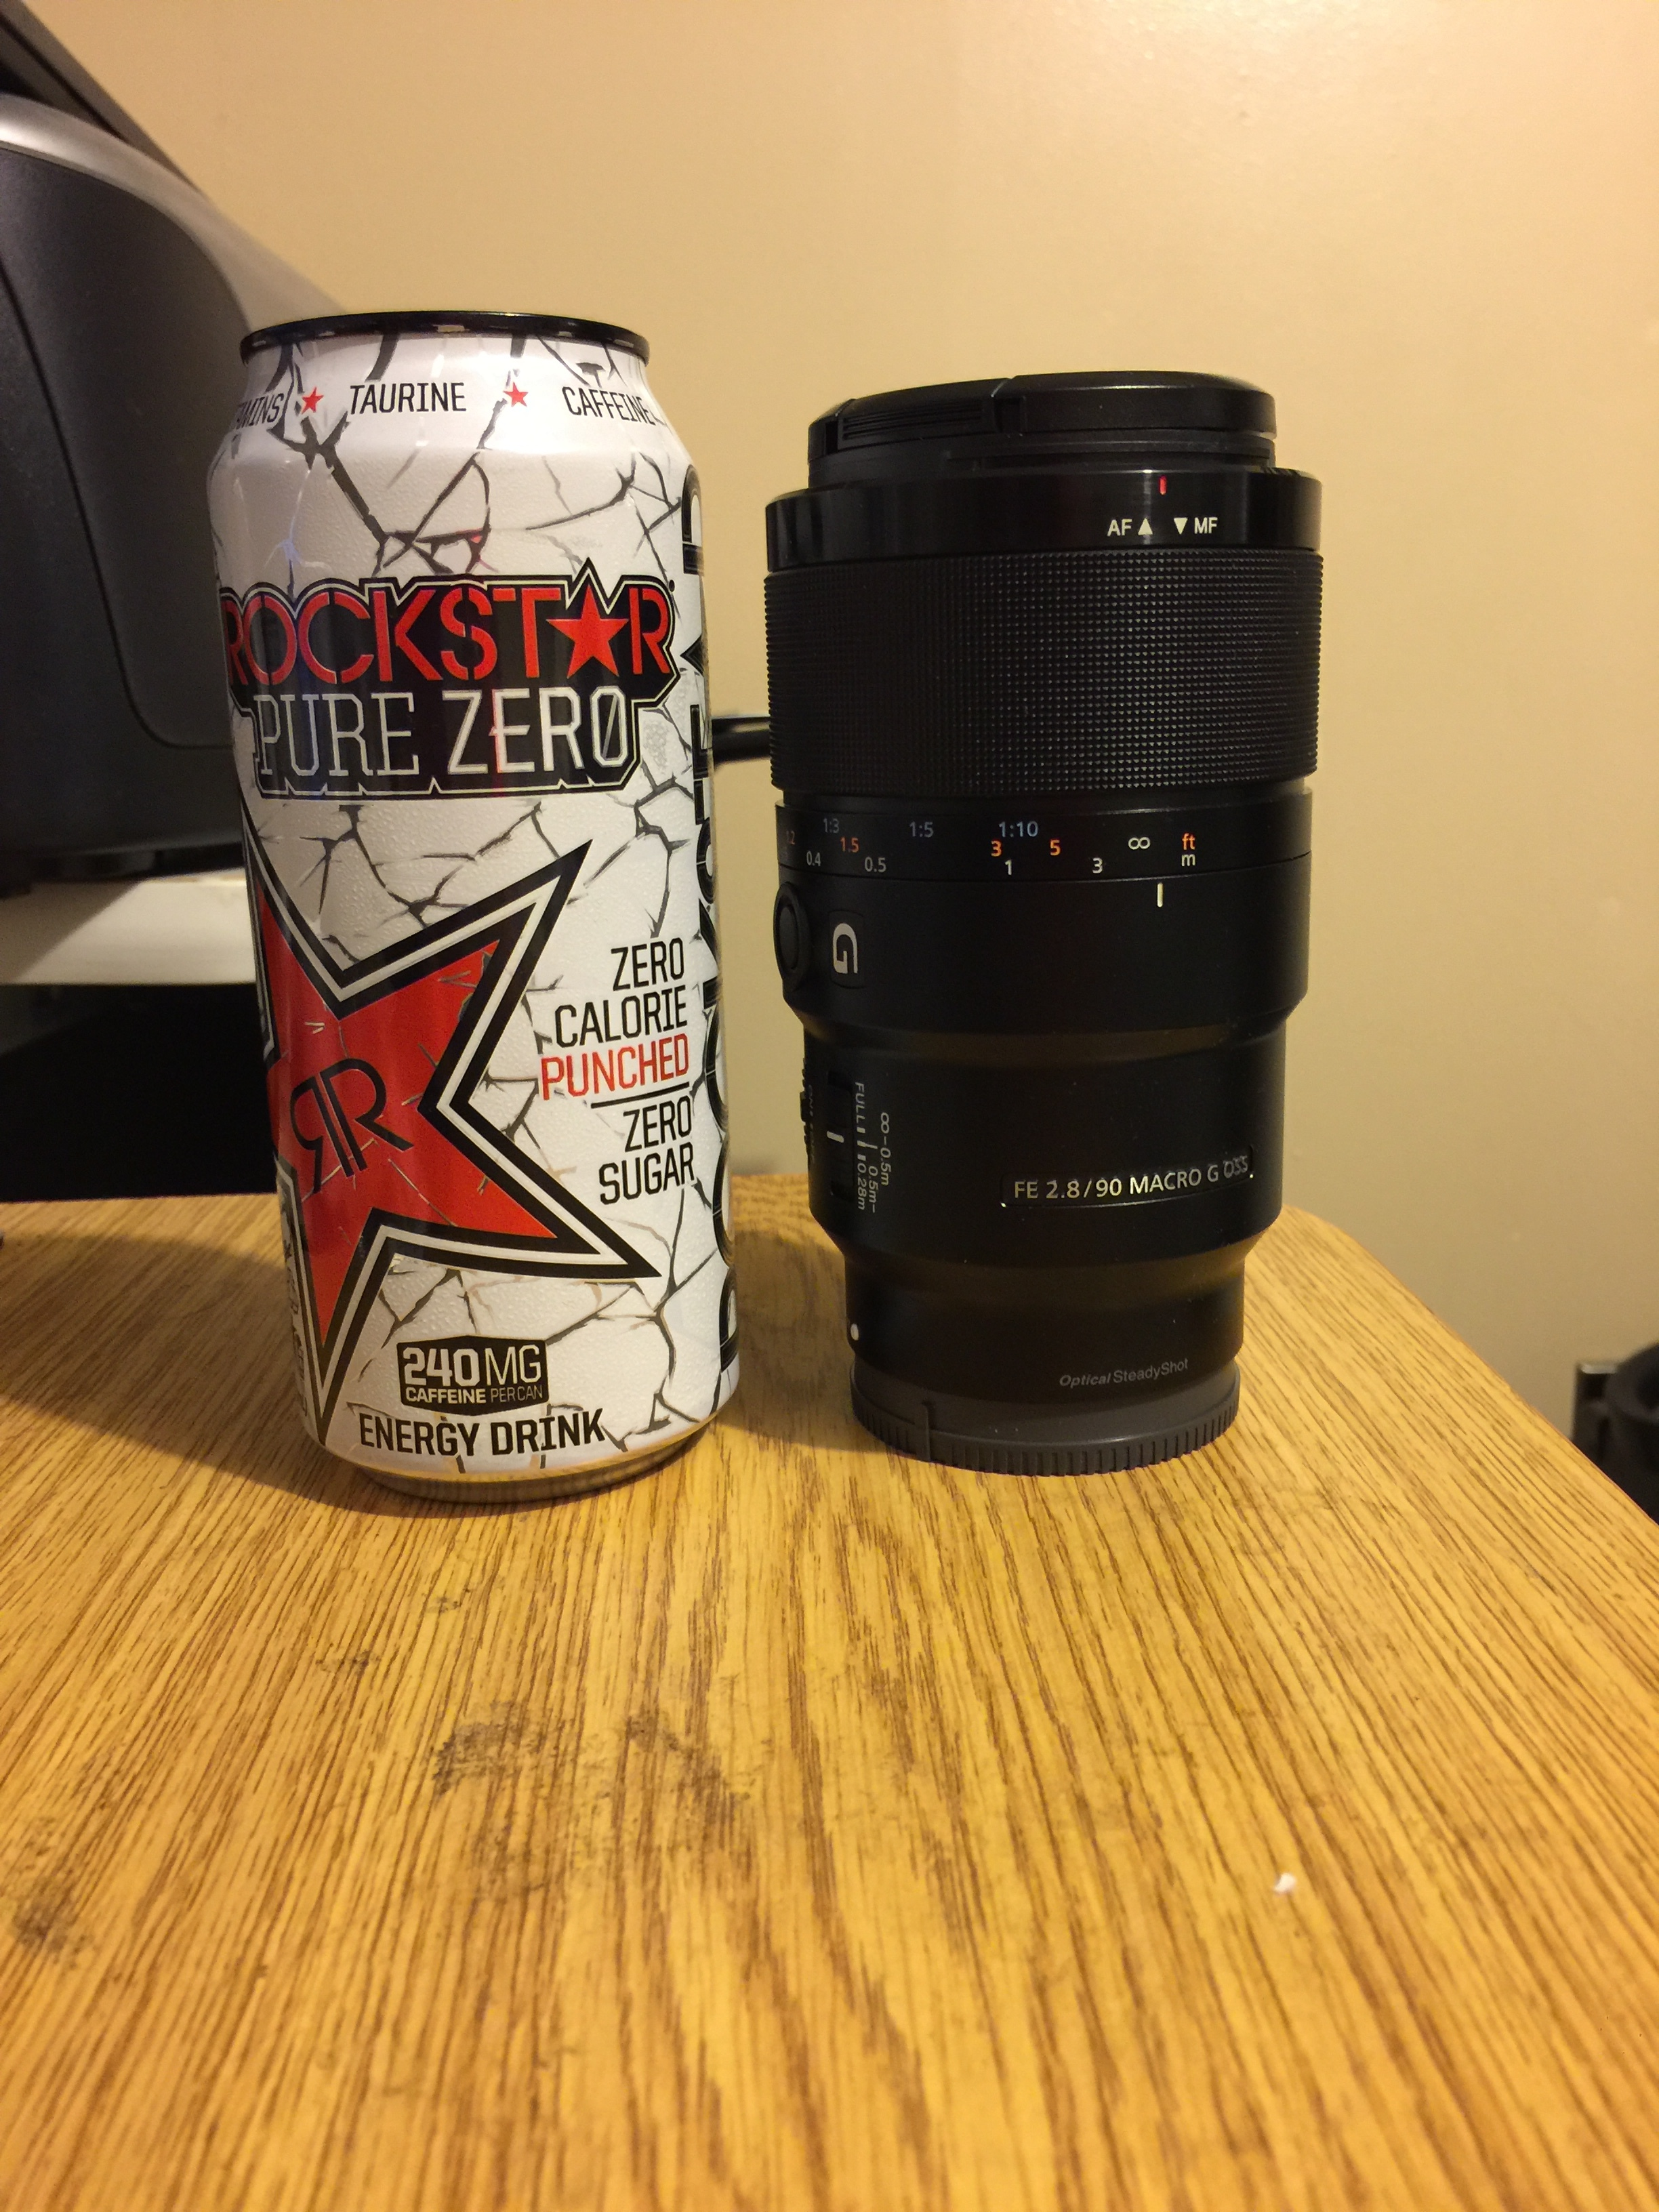 The 90mm/2.8 macro lens is a little shorter and a little thicker than my Rockstar energy drink.  Definitely heavier!